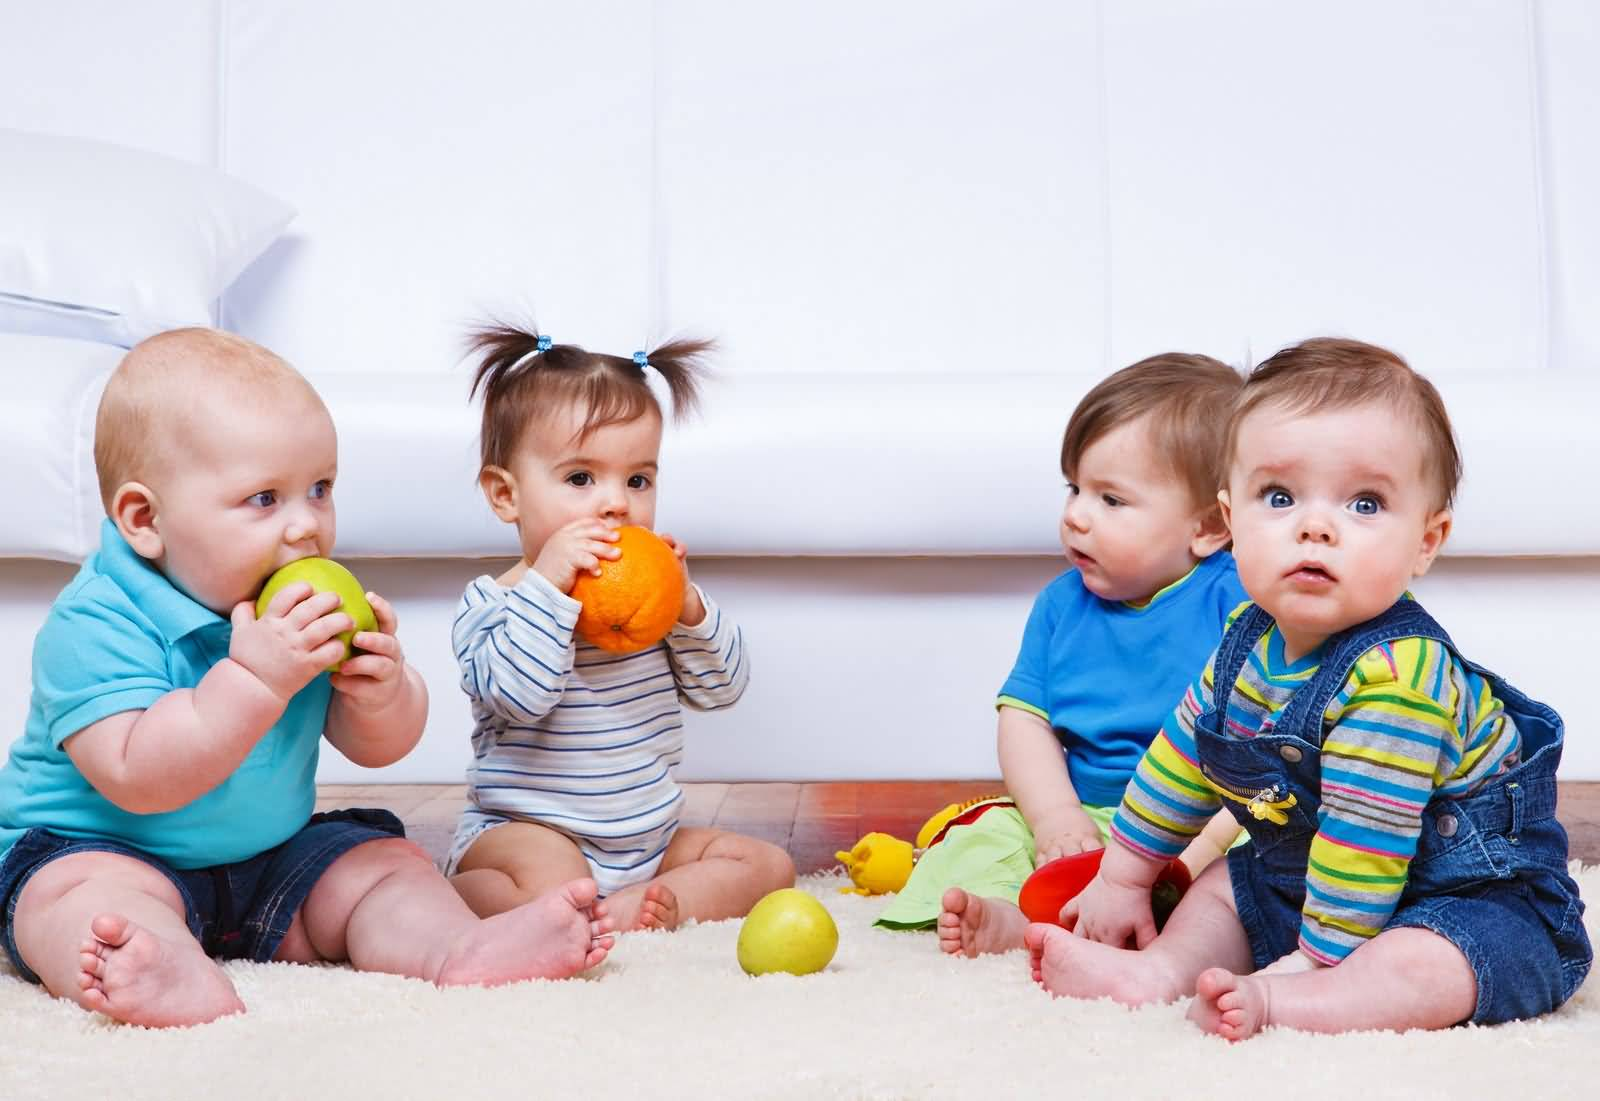 Healthy Babies Playing With Toys